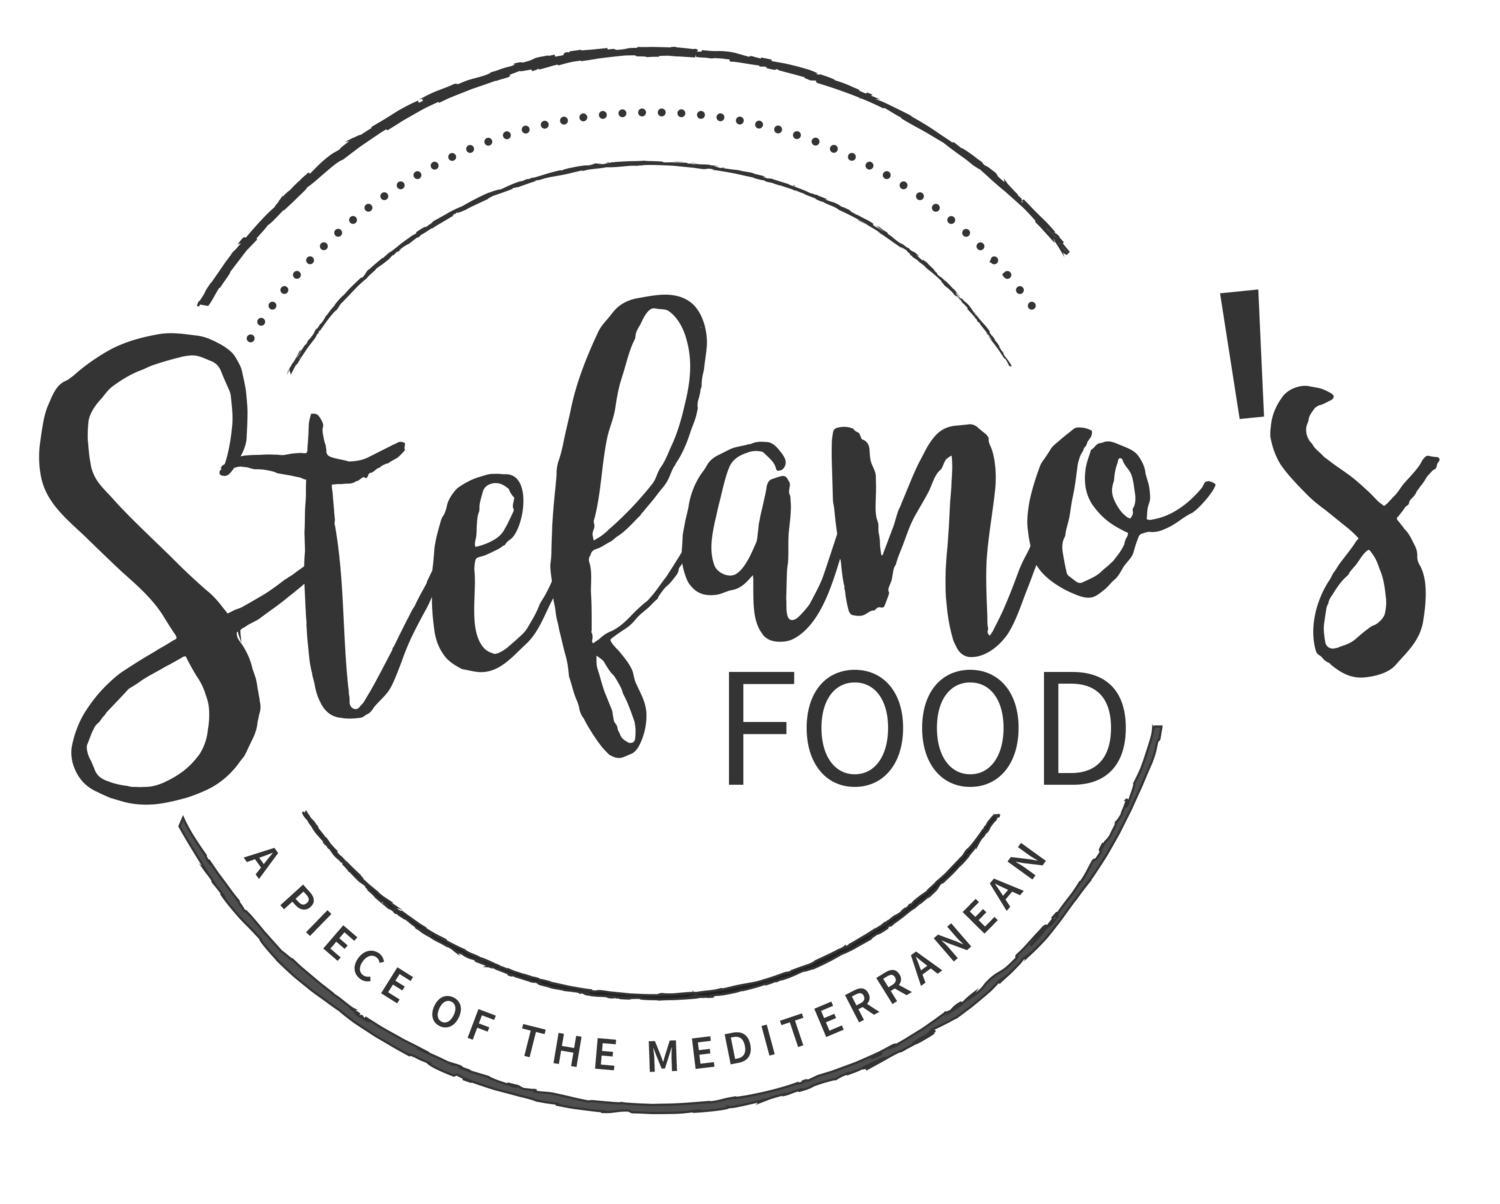 Stefano's Food